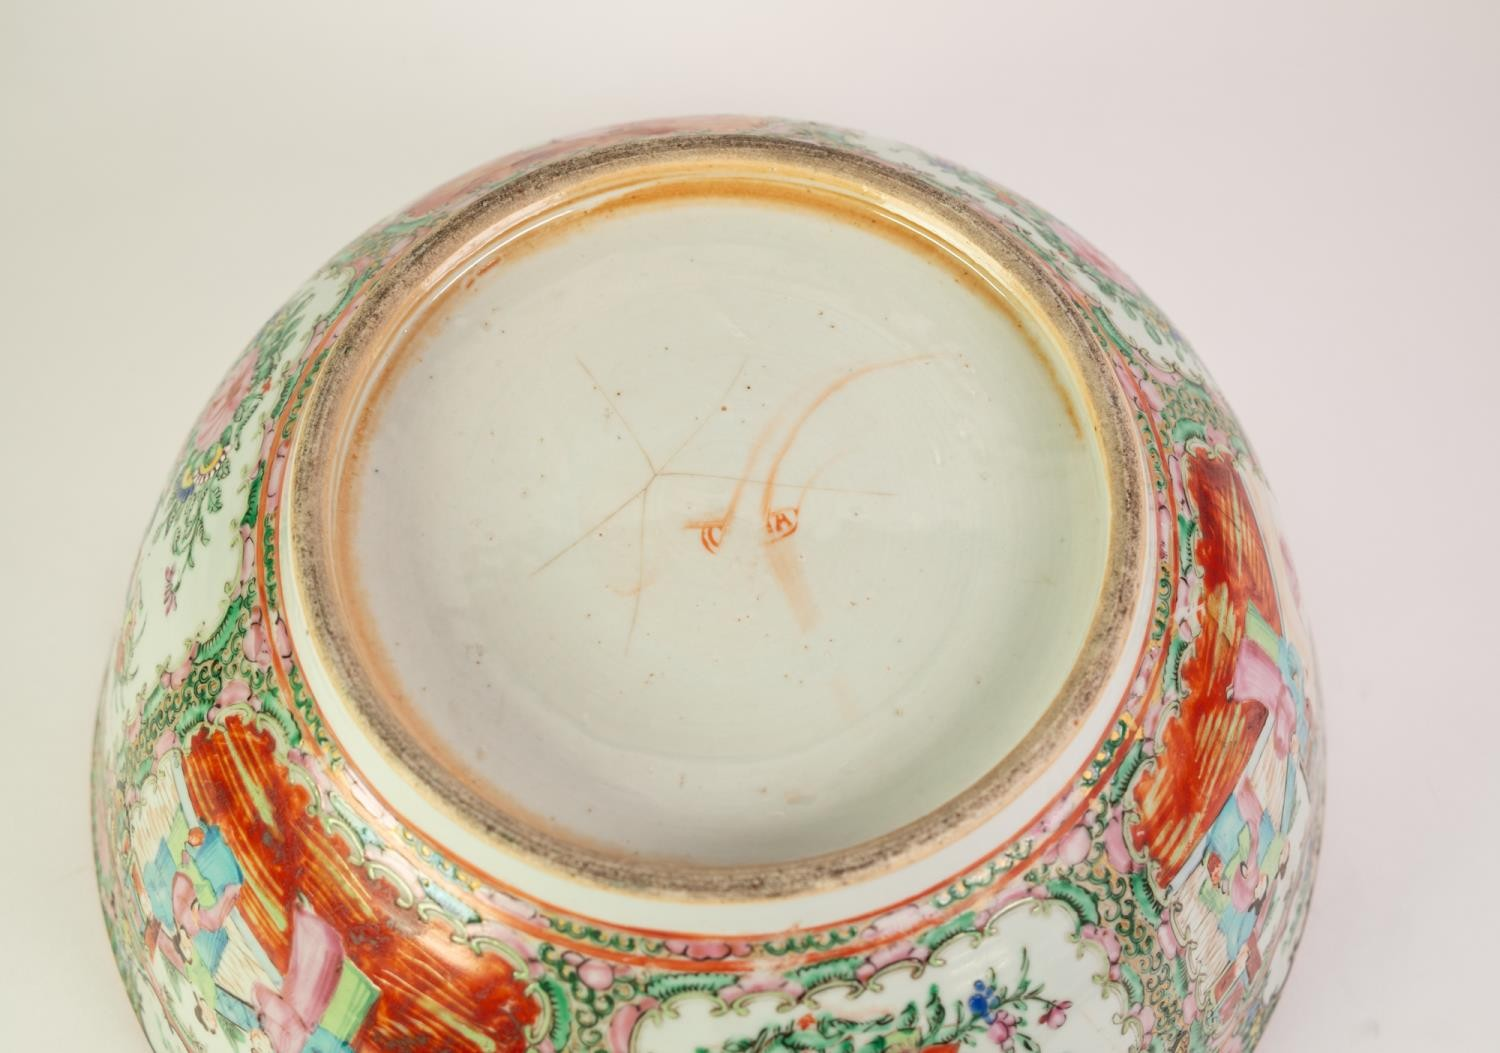 TWENTIETH CENTURY CHINESE FAMILLE ROSE PORCELAIN ROSE BOWL, of slightly flared, footed form, - Image 4 of 4